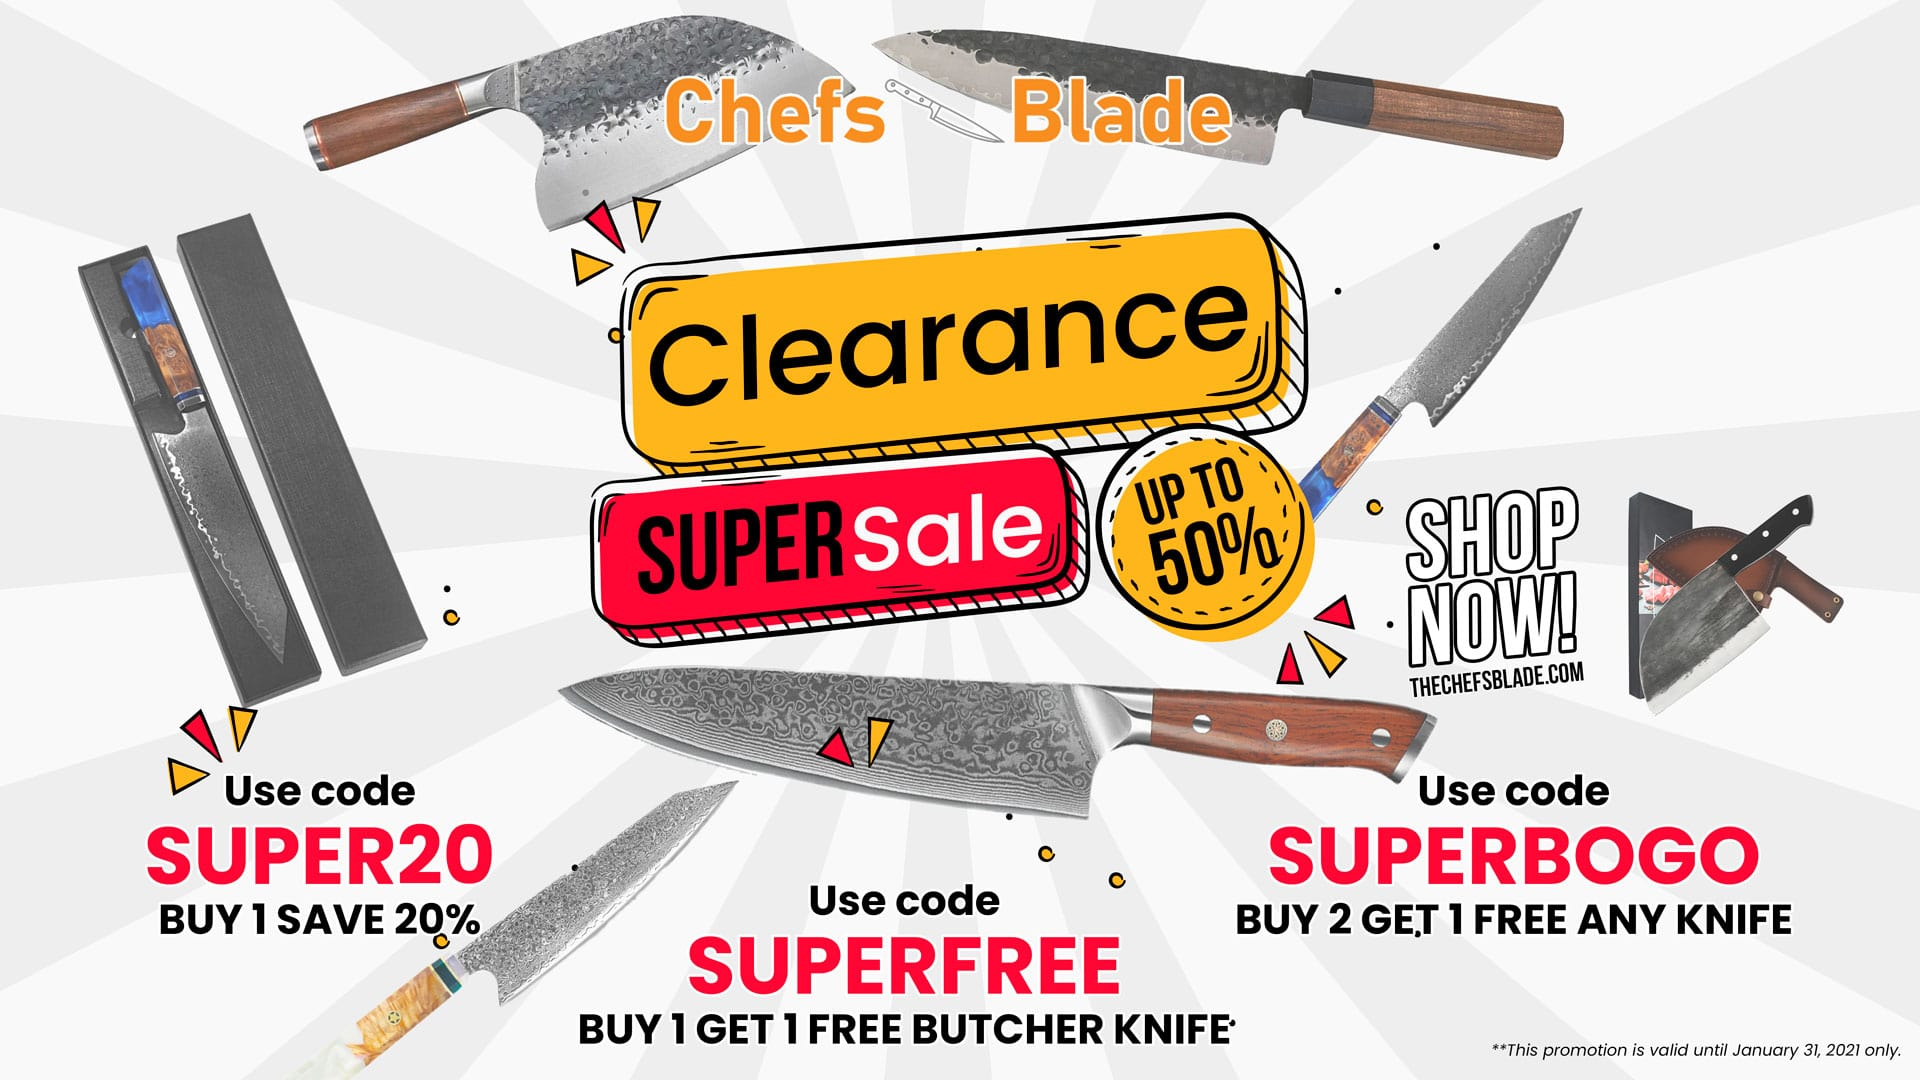 Clearance Sale Event - Chefs Blade Co.